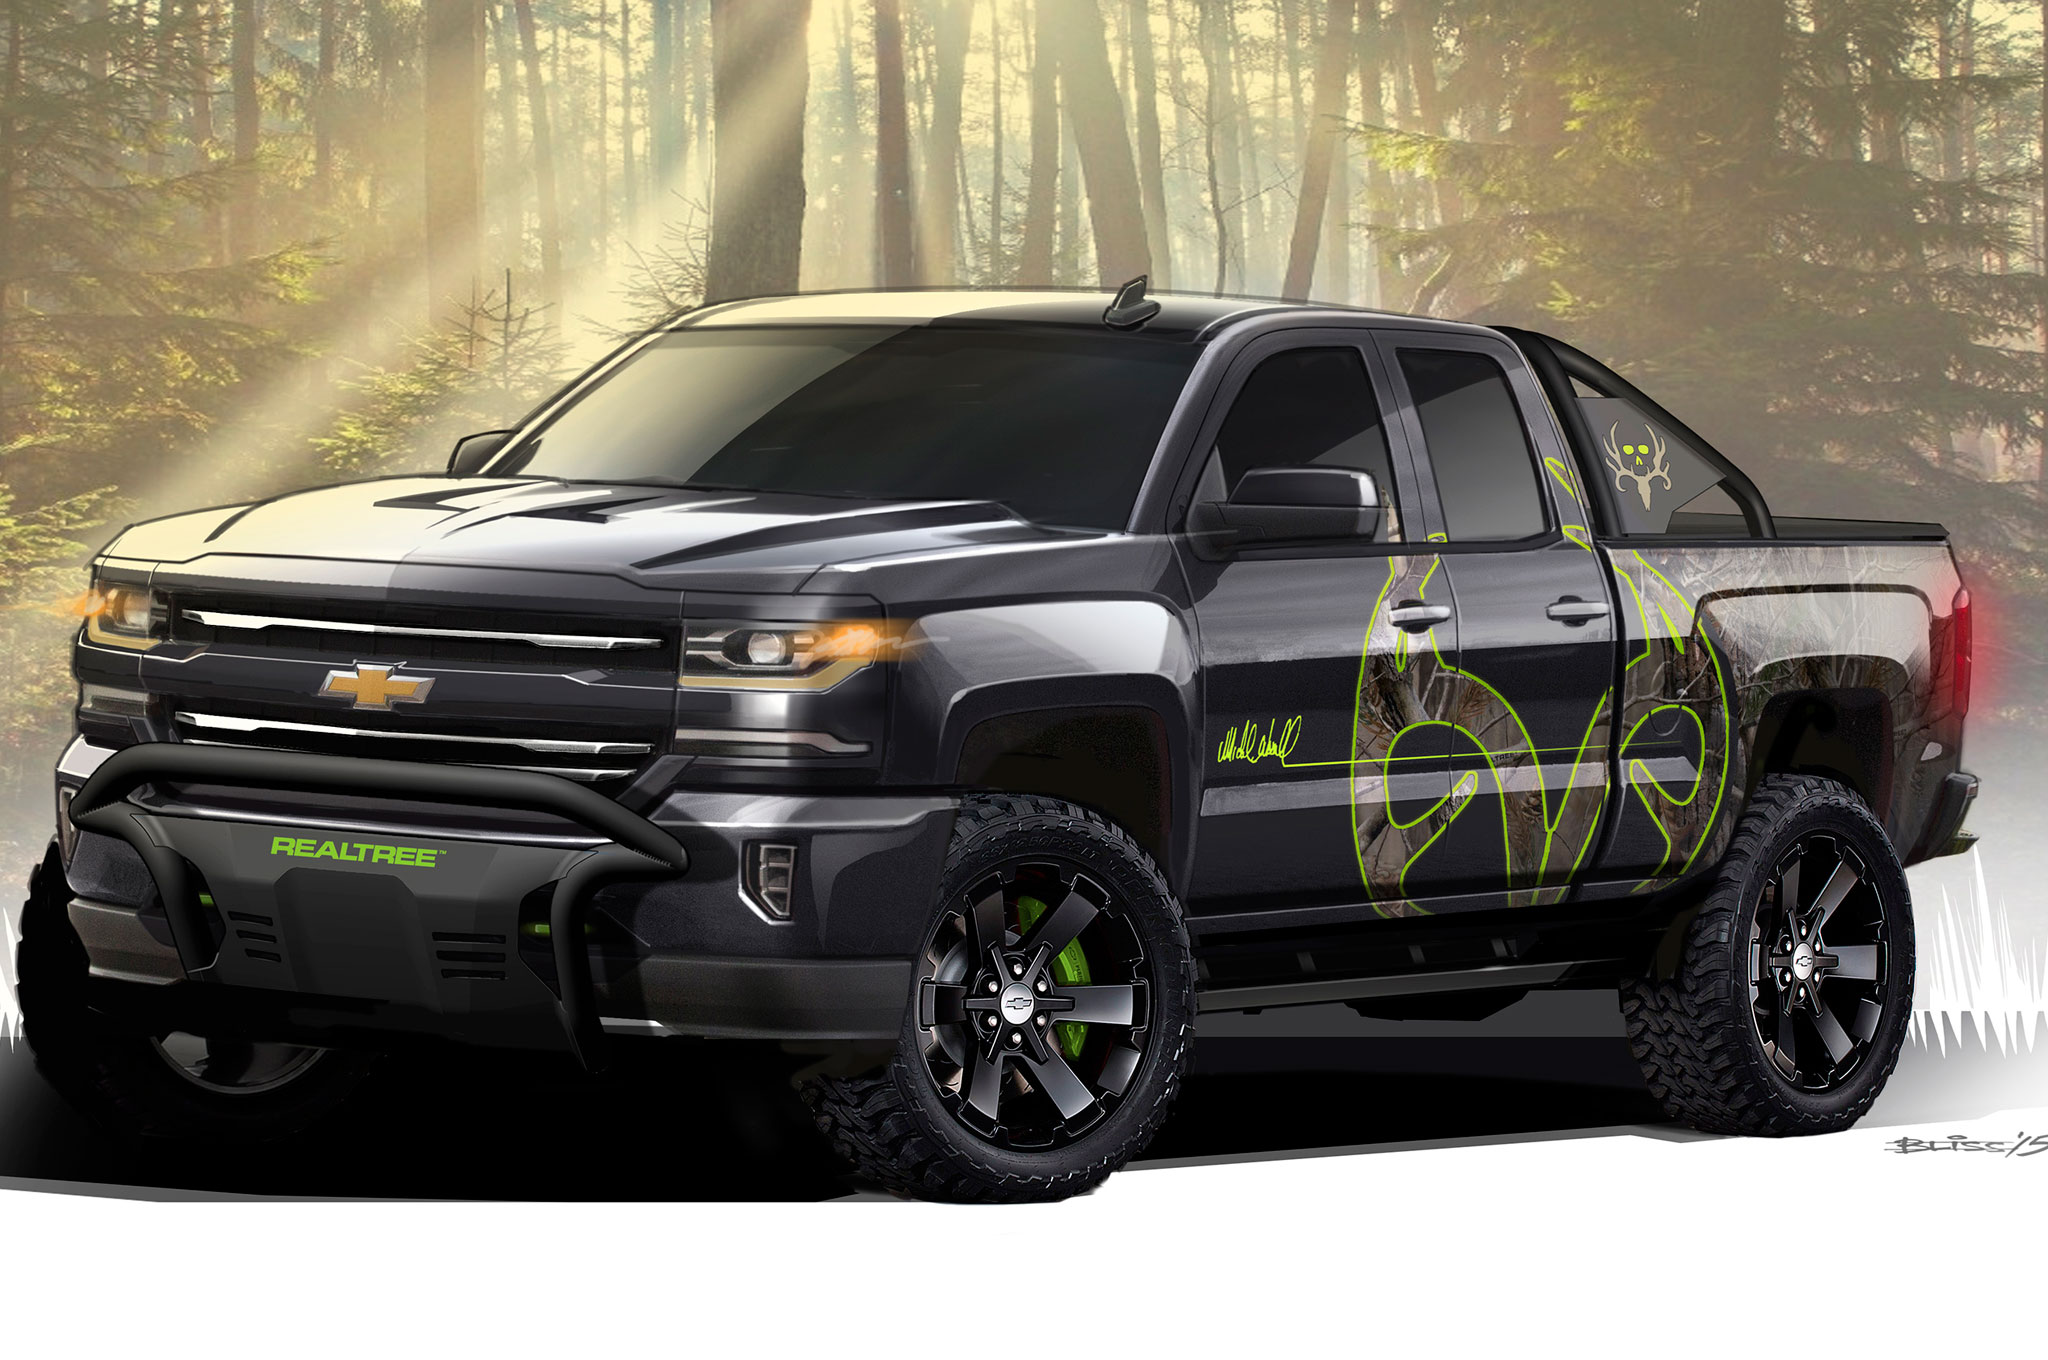 Special Edition Silverado - New Car Review and Release Date 2018-2019 by Mommy Owl